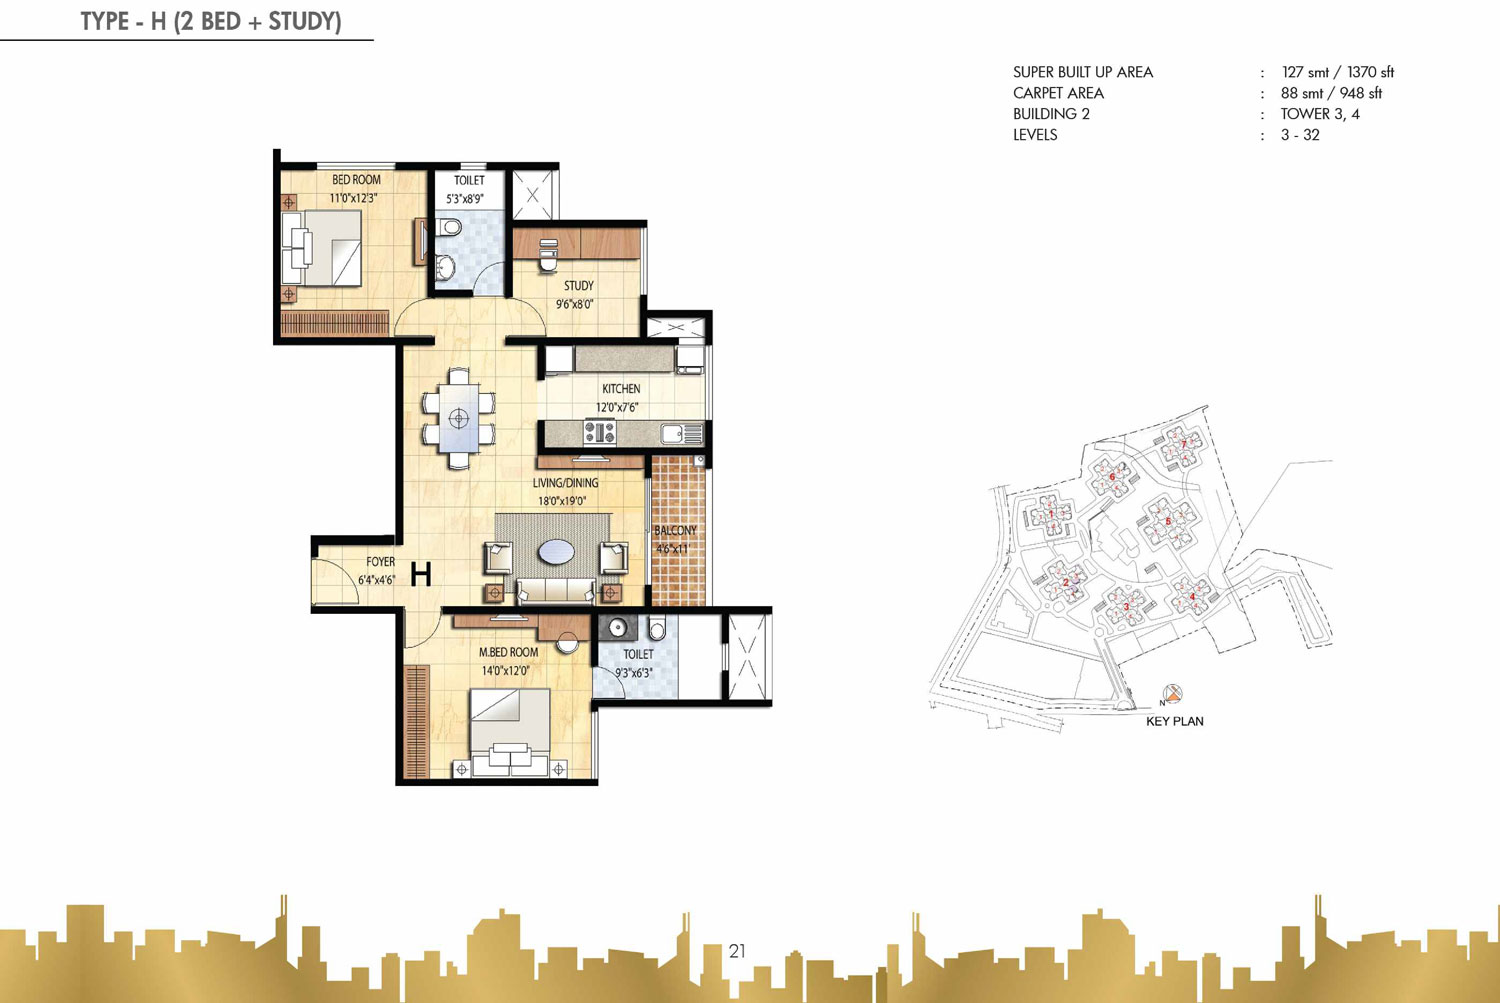 Type H - 2 Bed Study - 1370 Sq Ft